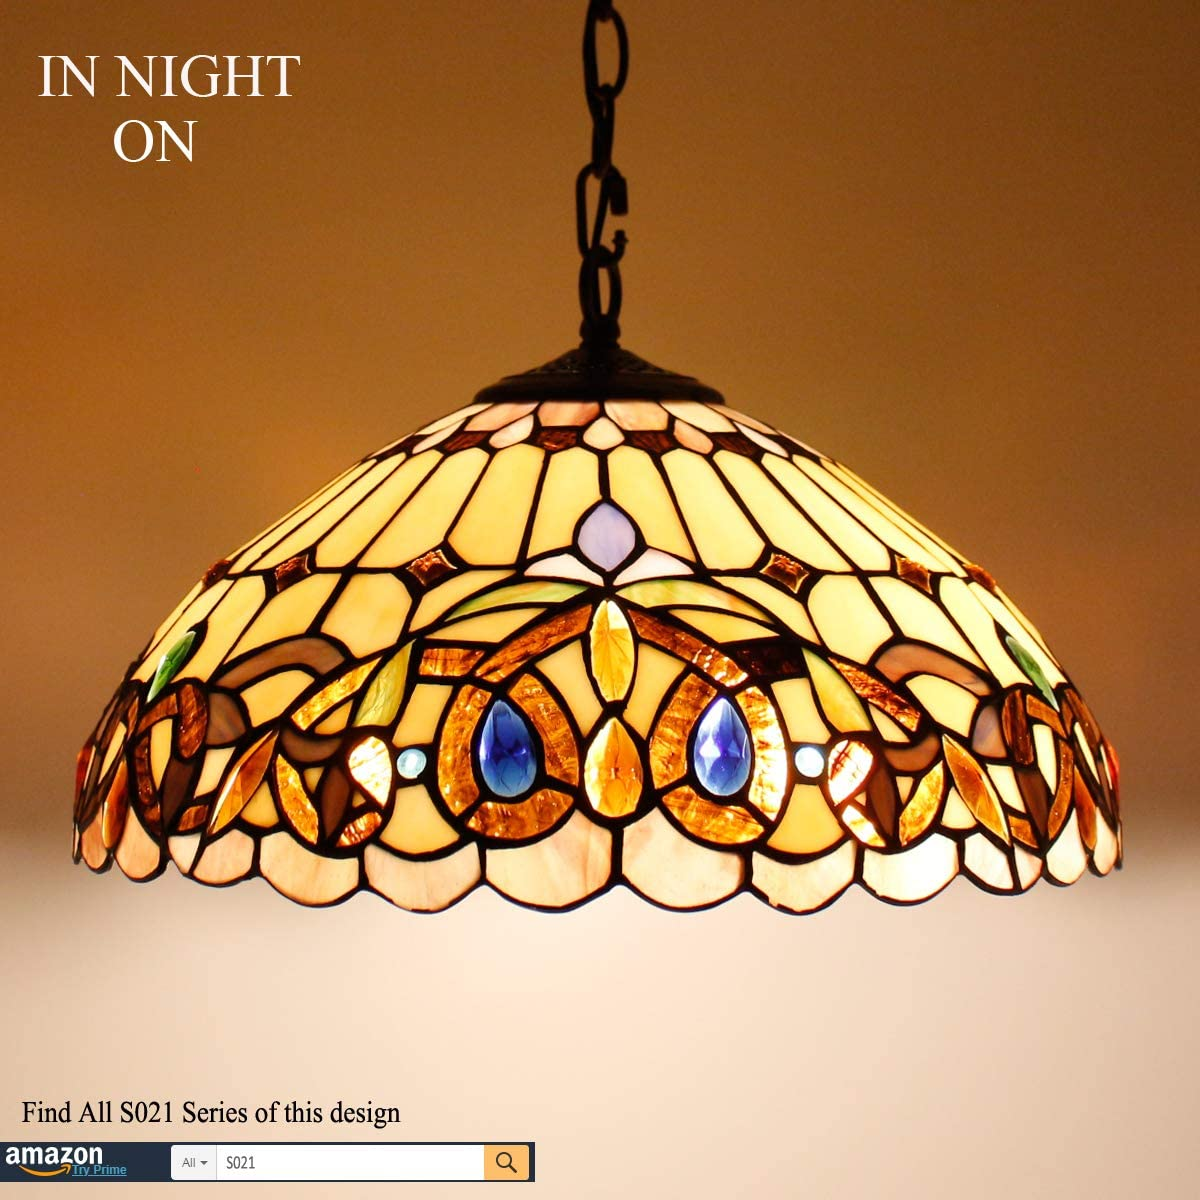 Tiffany Hanging Lamp 16 Inch Pull Chain Serenity Victorian Stained Glass Lampshade Anqitue Chandelier Ceiling Style Pendant 2 Light Fixture Decorate Dinner Room Living Room Bedroom S021 WERFACTORY